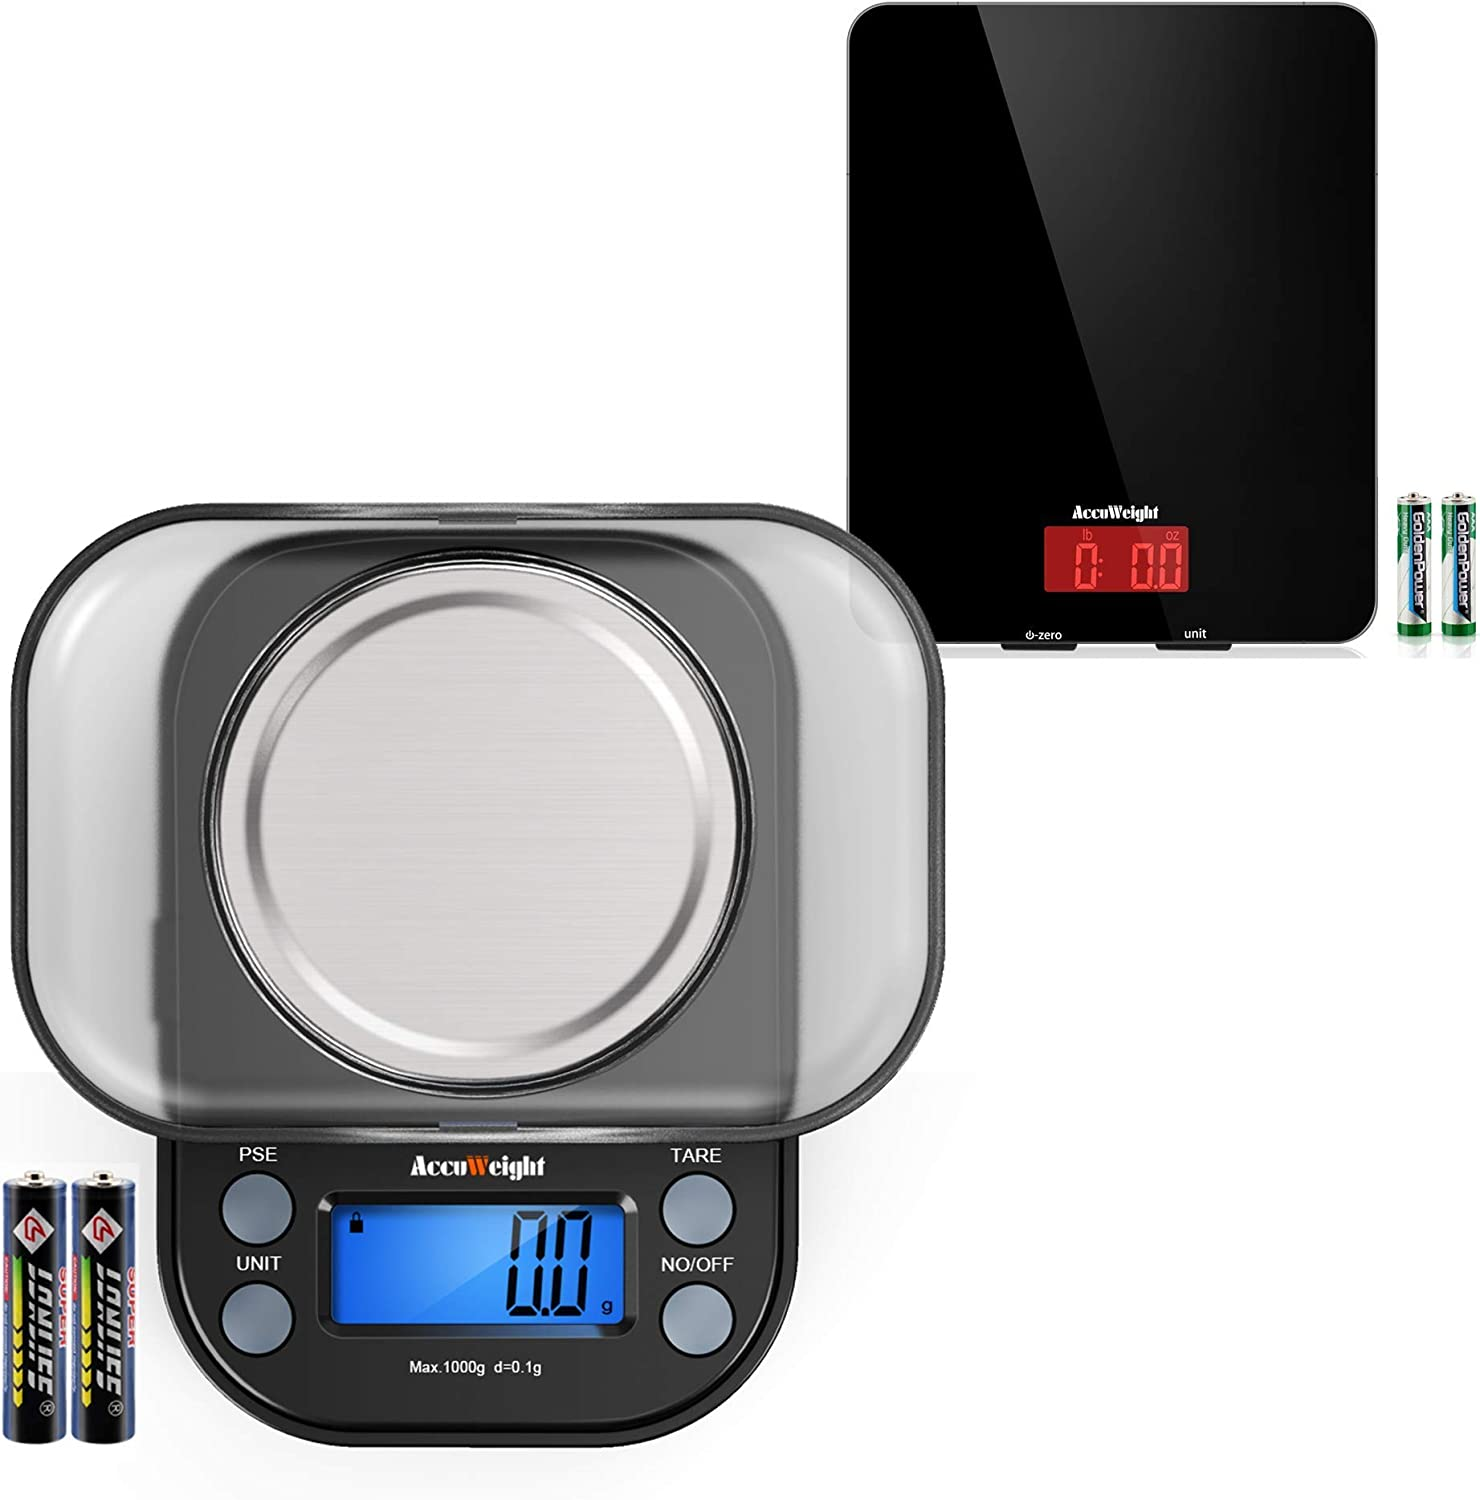 AccuWeight 201 Digital Food Scale+AccuWeight 255B Mini Pocket Gram Scale